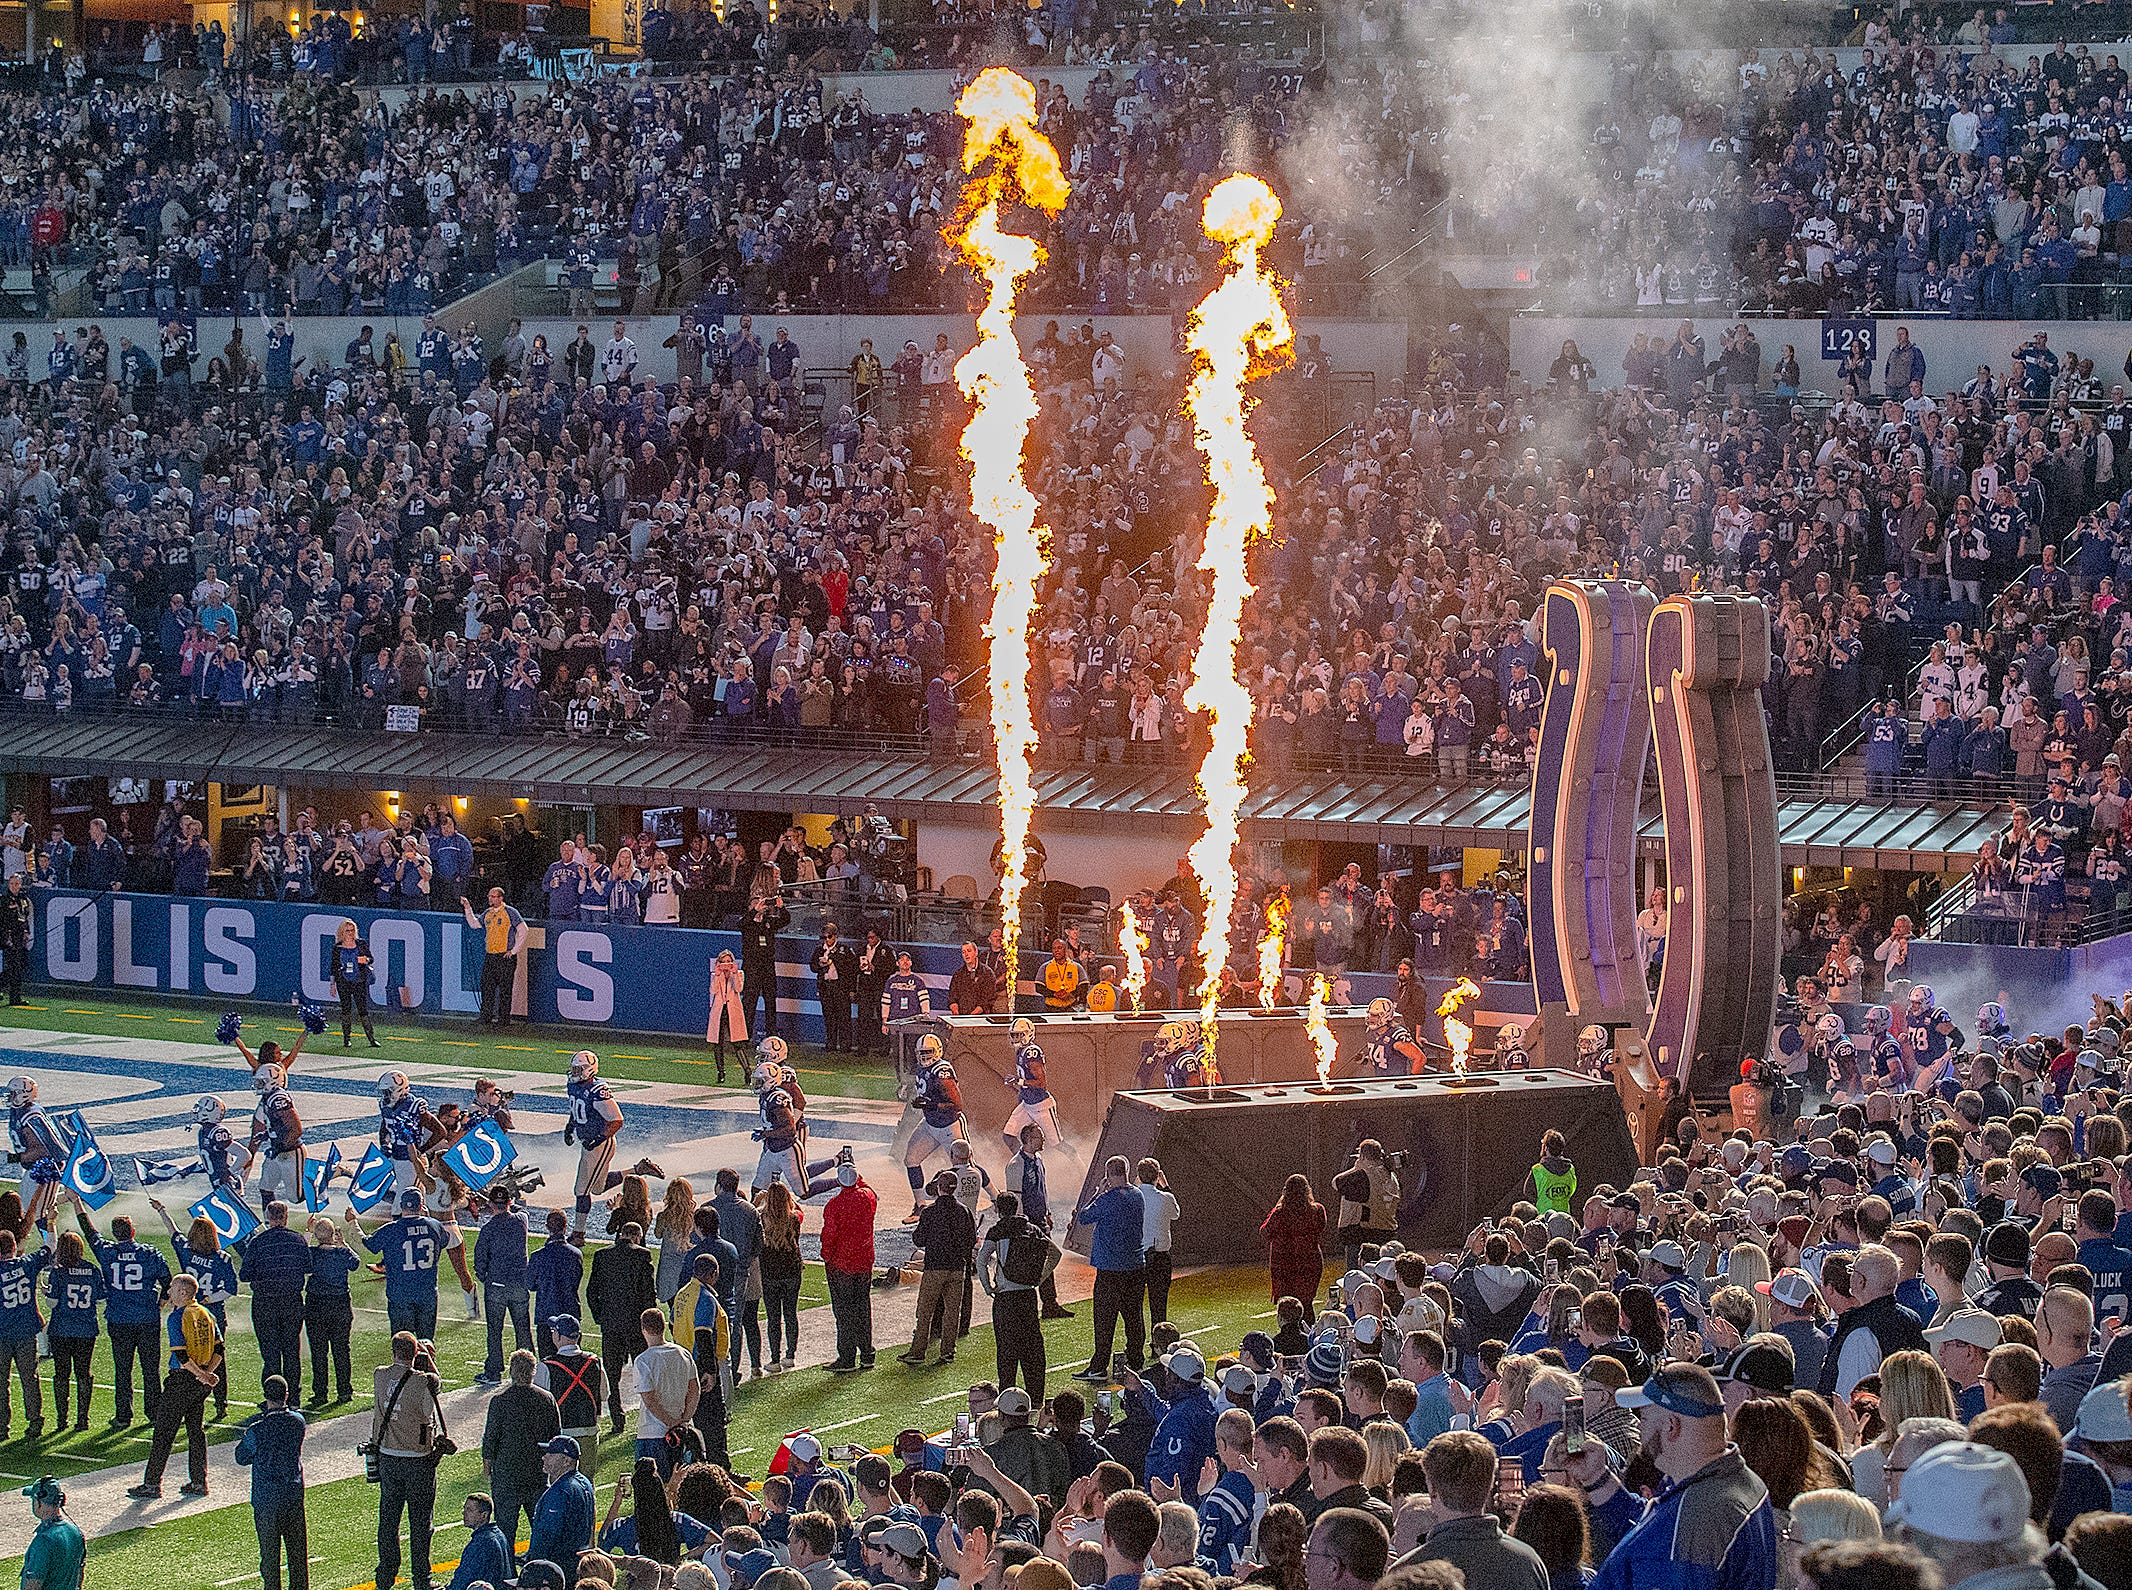 The Indianapolis Colts take the field to play the Dallas Cowboys at Lucas Oil Stadium on Sunday, Dec. 16, 2018.